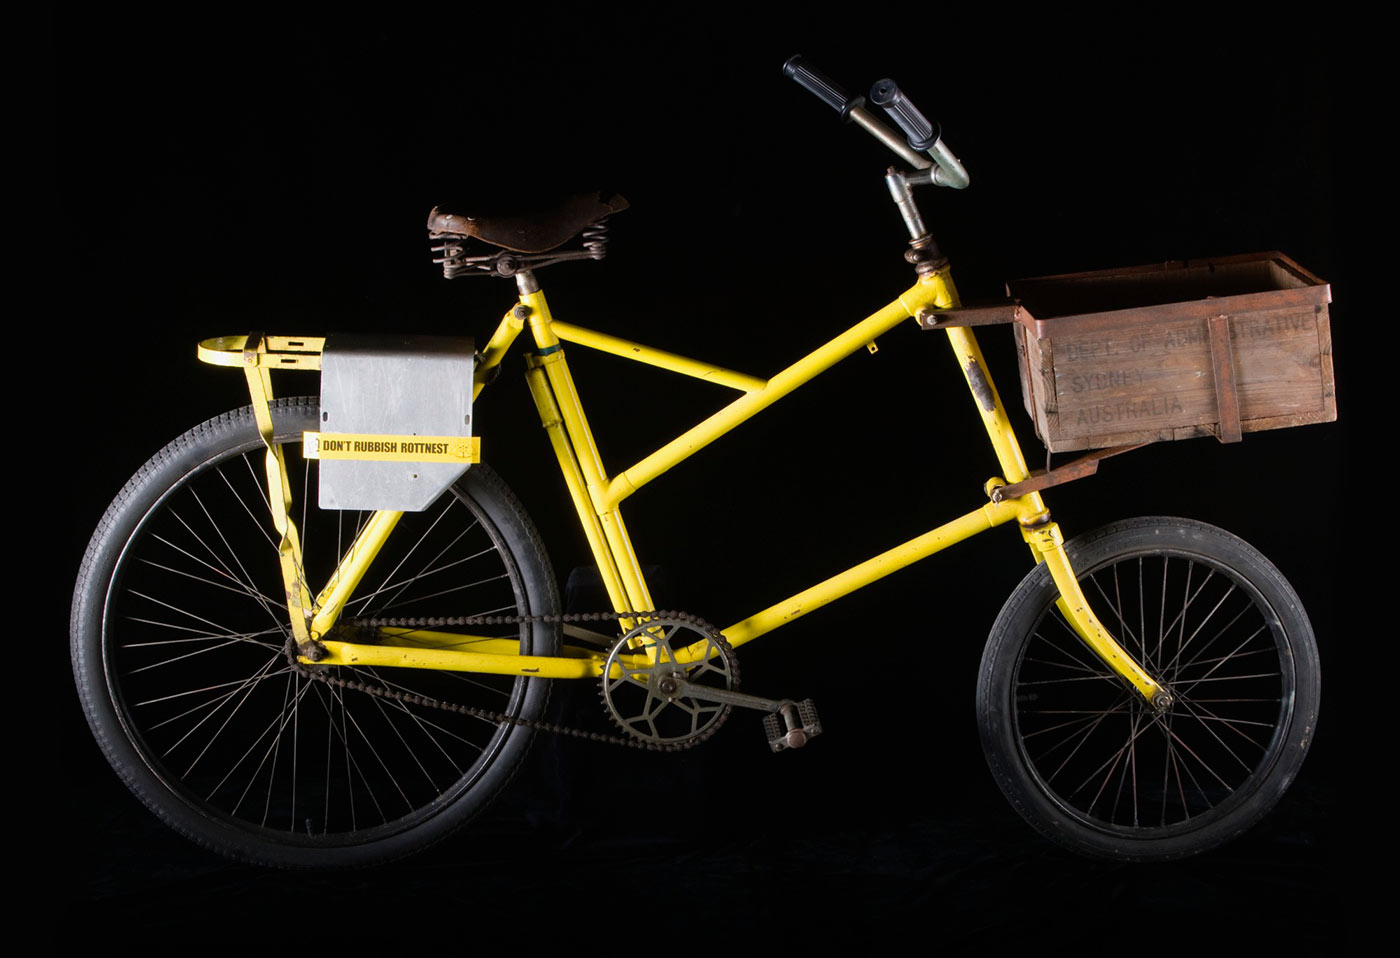 A yellow bicycle with a wooden crate on the front and a small detachable a yellow sticker on the back of the bicycle reads